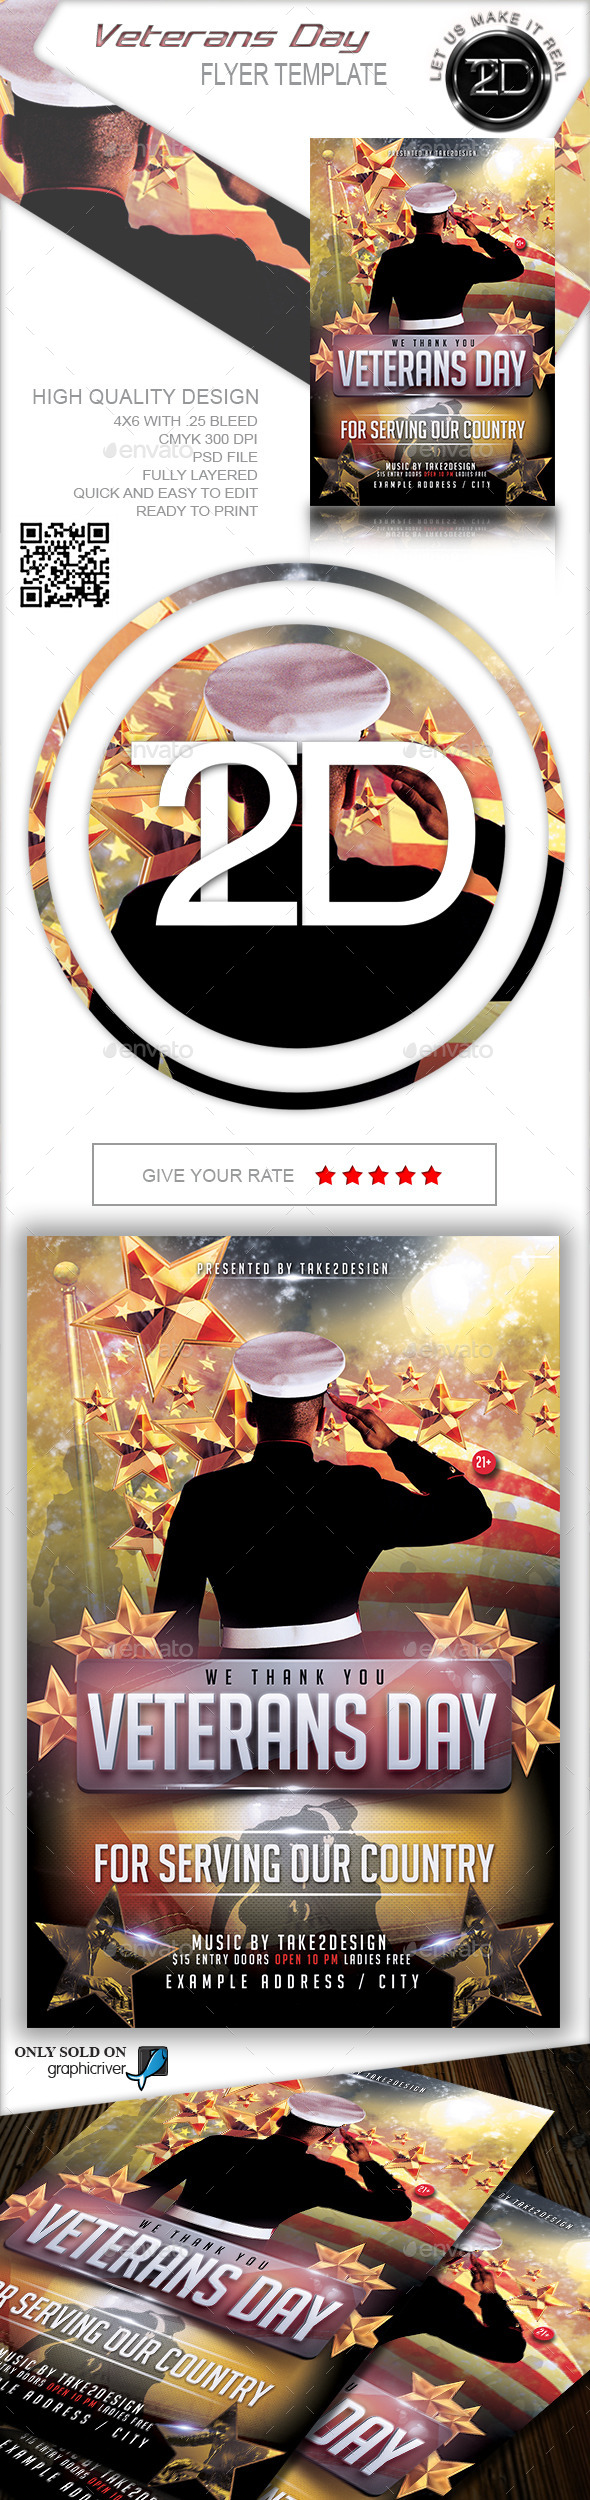 GraphicRiver Veterans Day Flyer Template 11005792